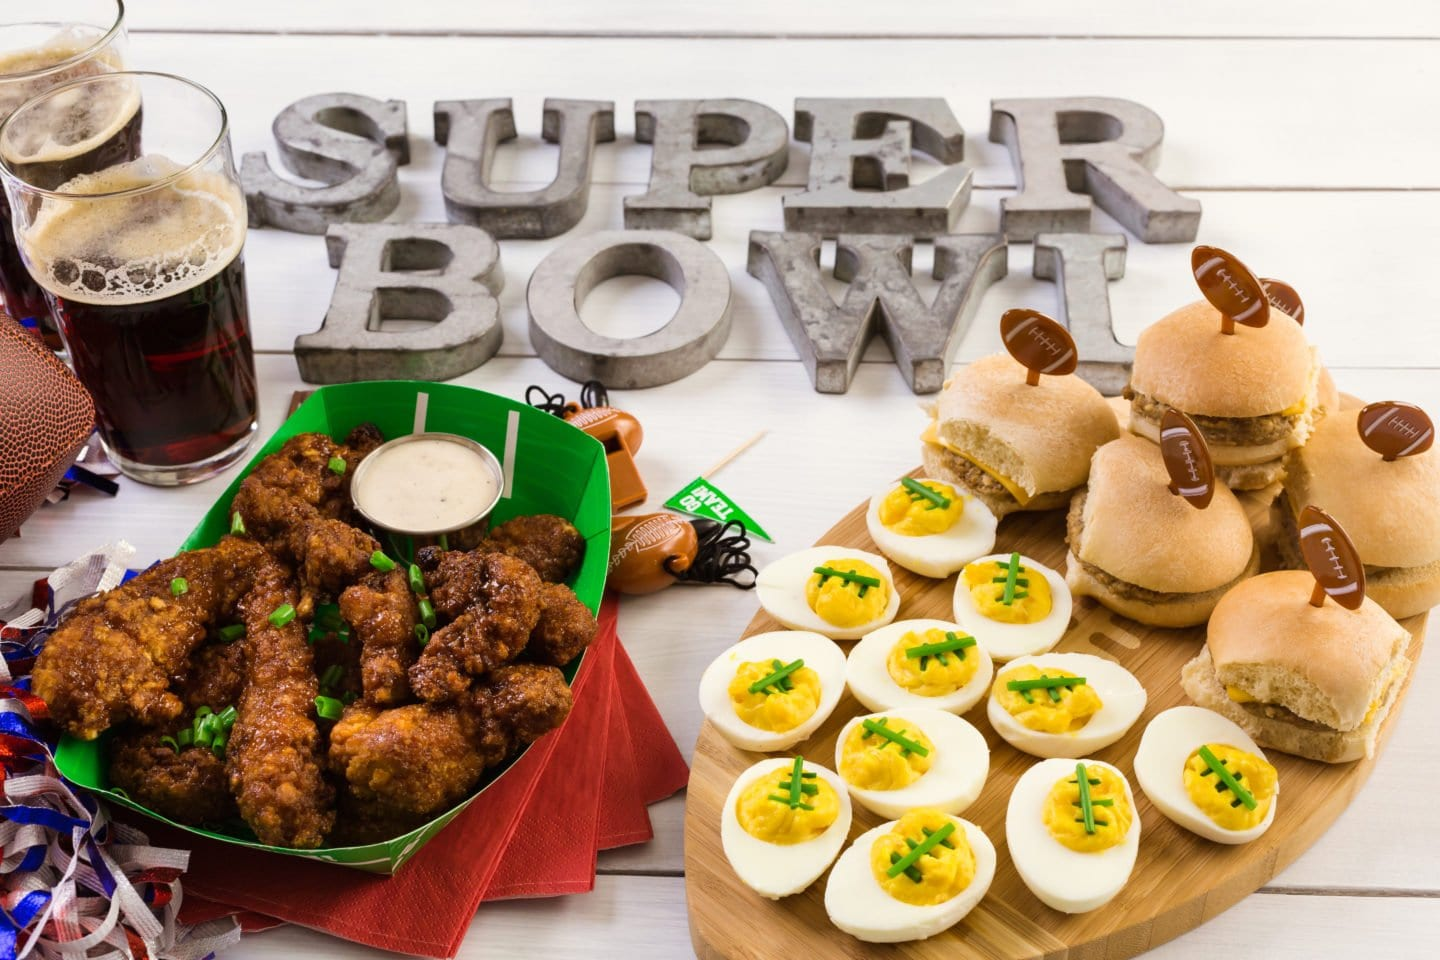 29 Easy Appetizers, Dips, Main Dishes and Desserts For A Super Bowl Party